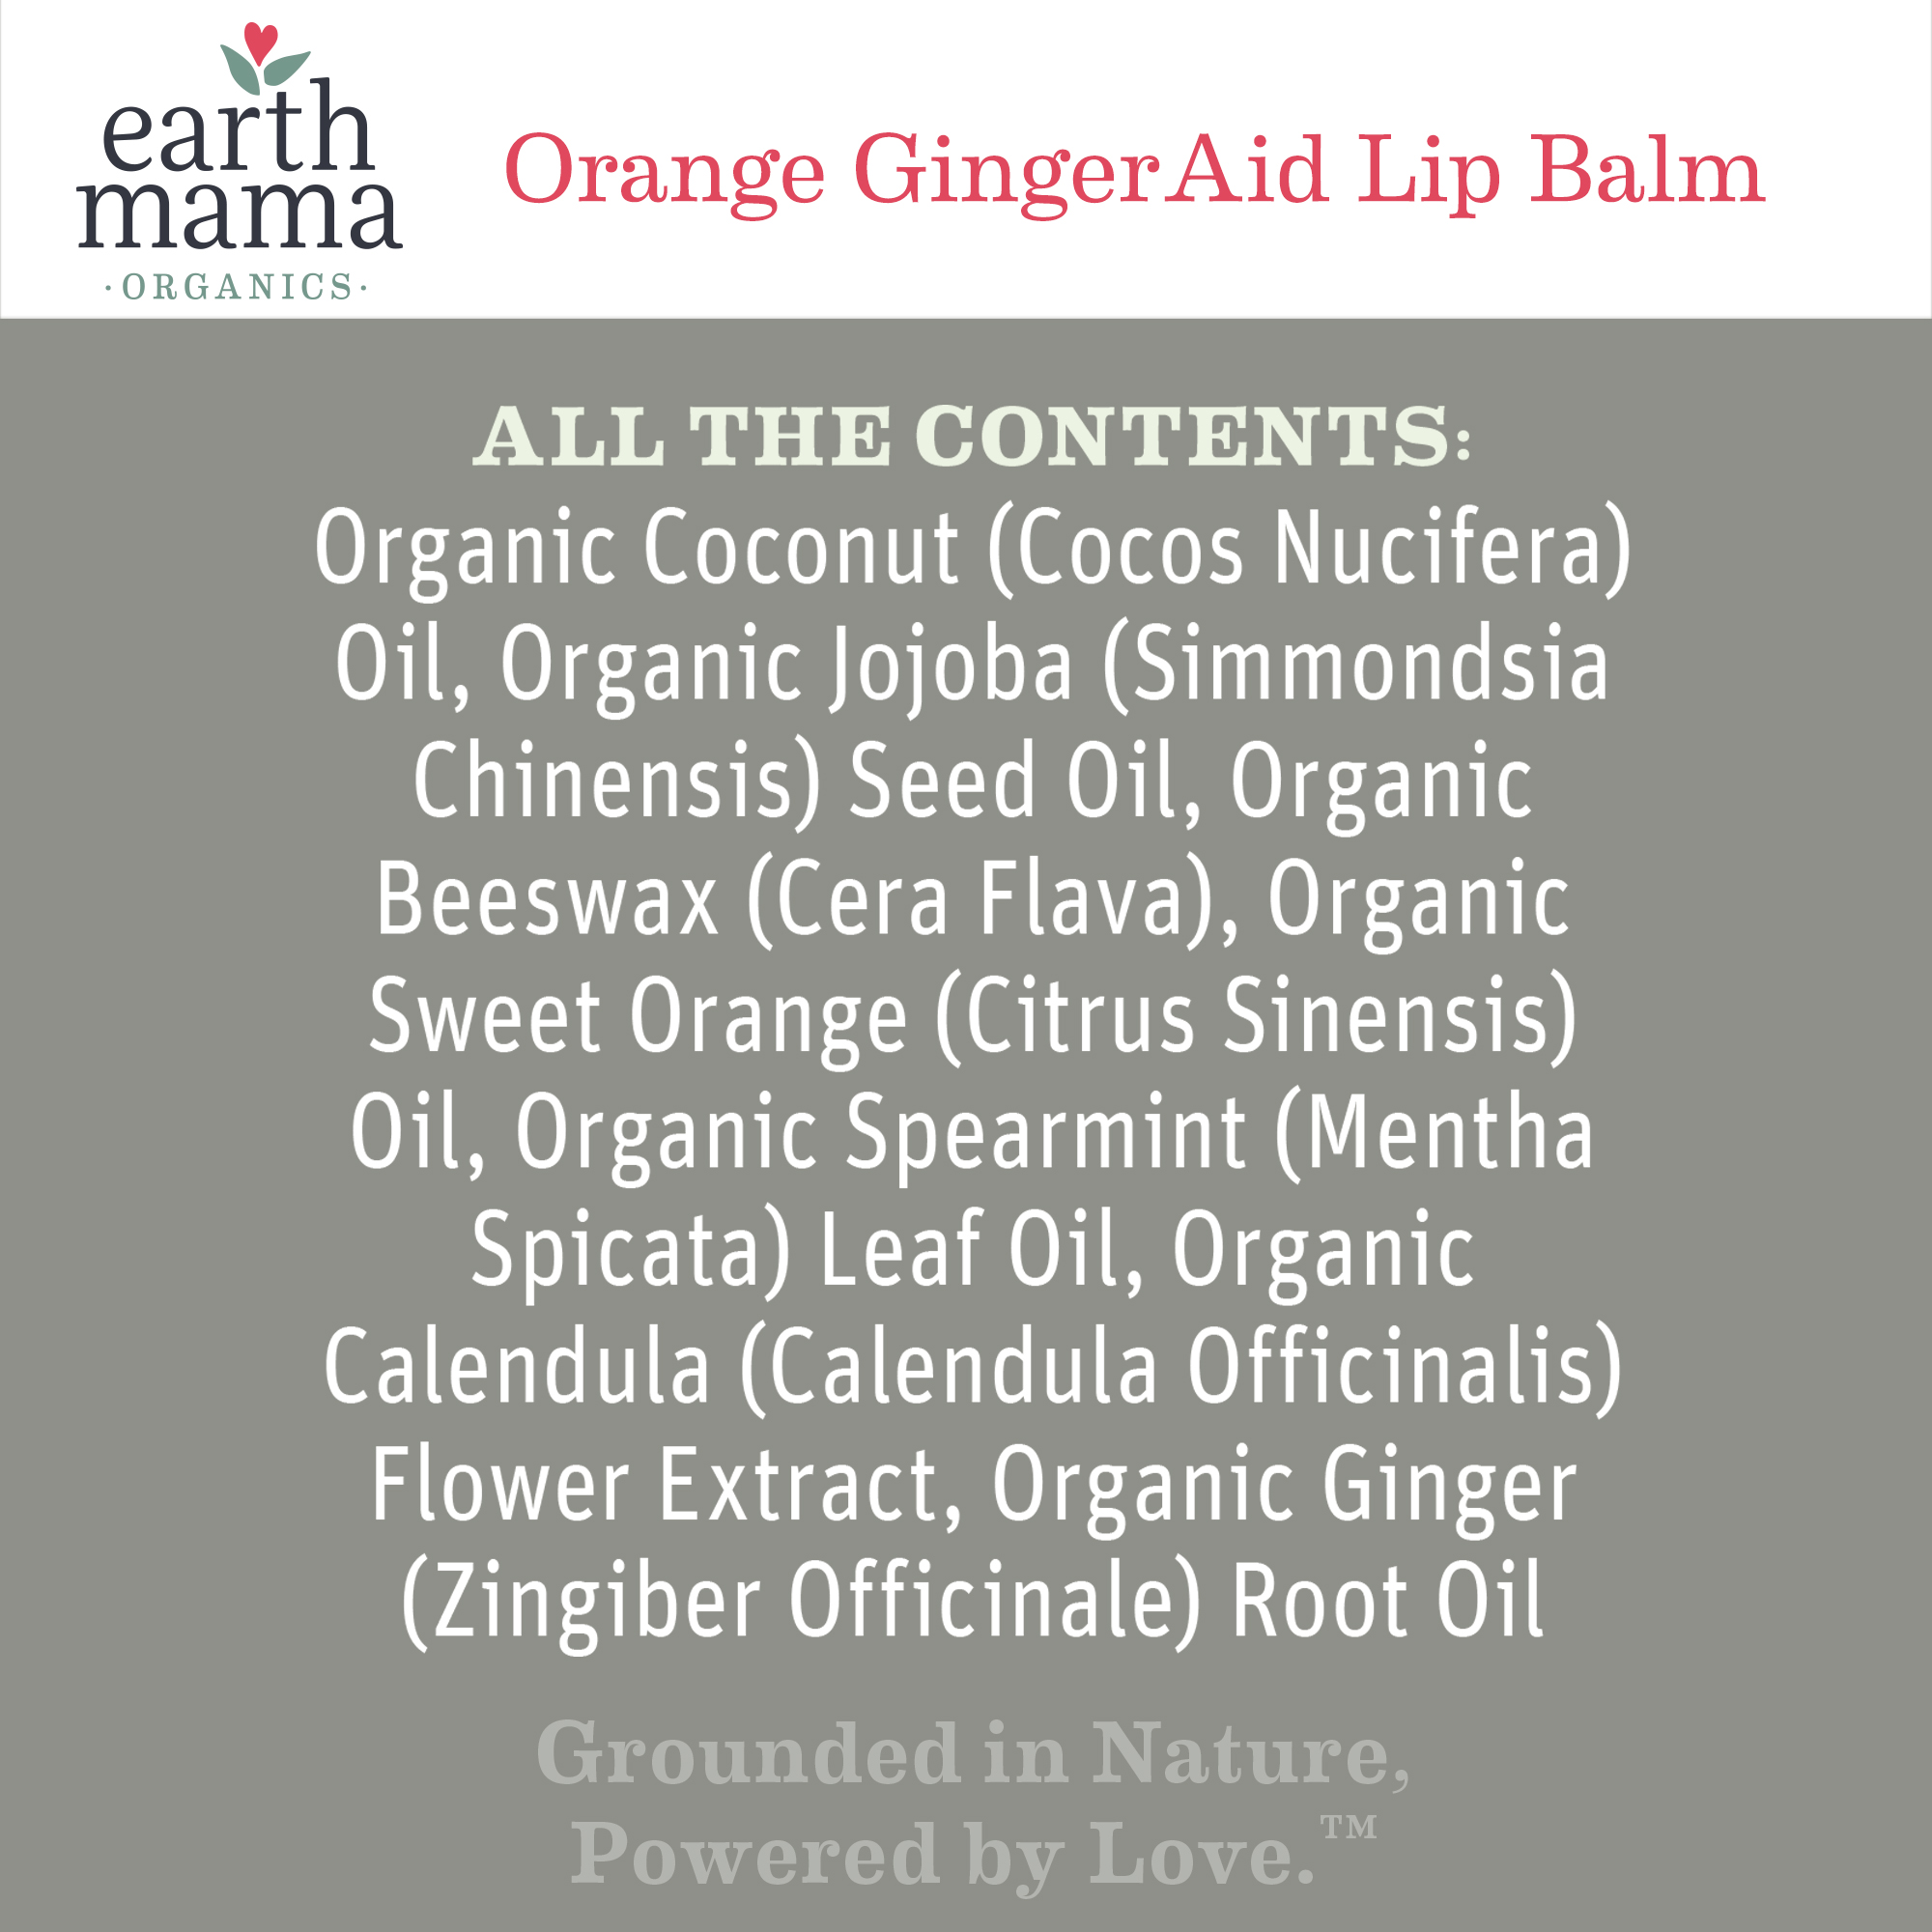 earth-mama-angel-baby-lip-balm-orange-gingeraid-ingredients.jpg